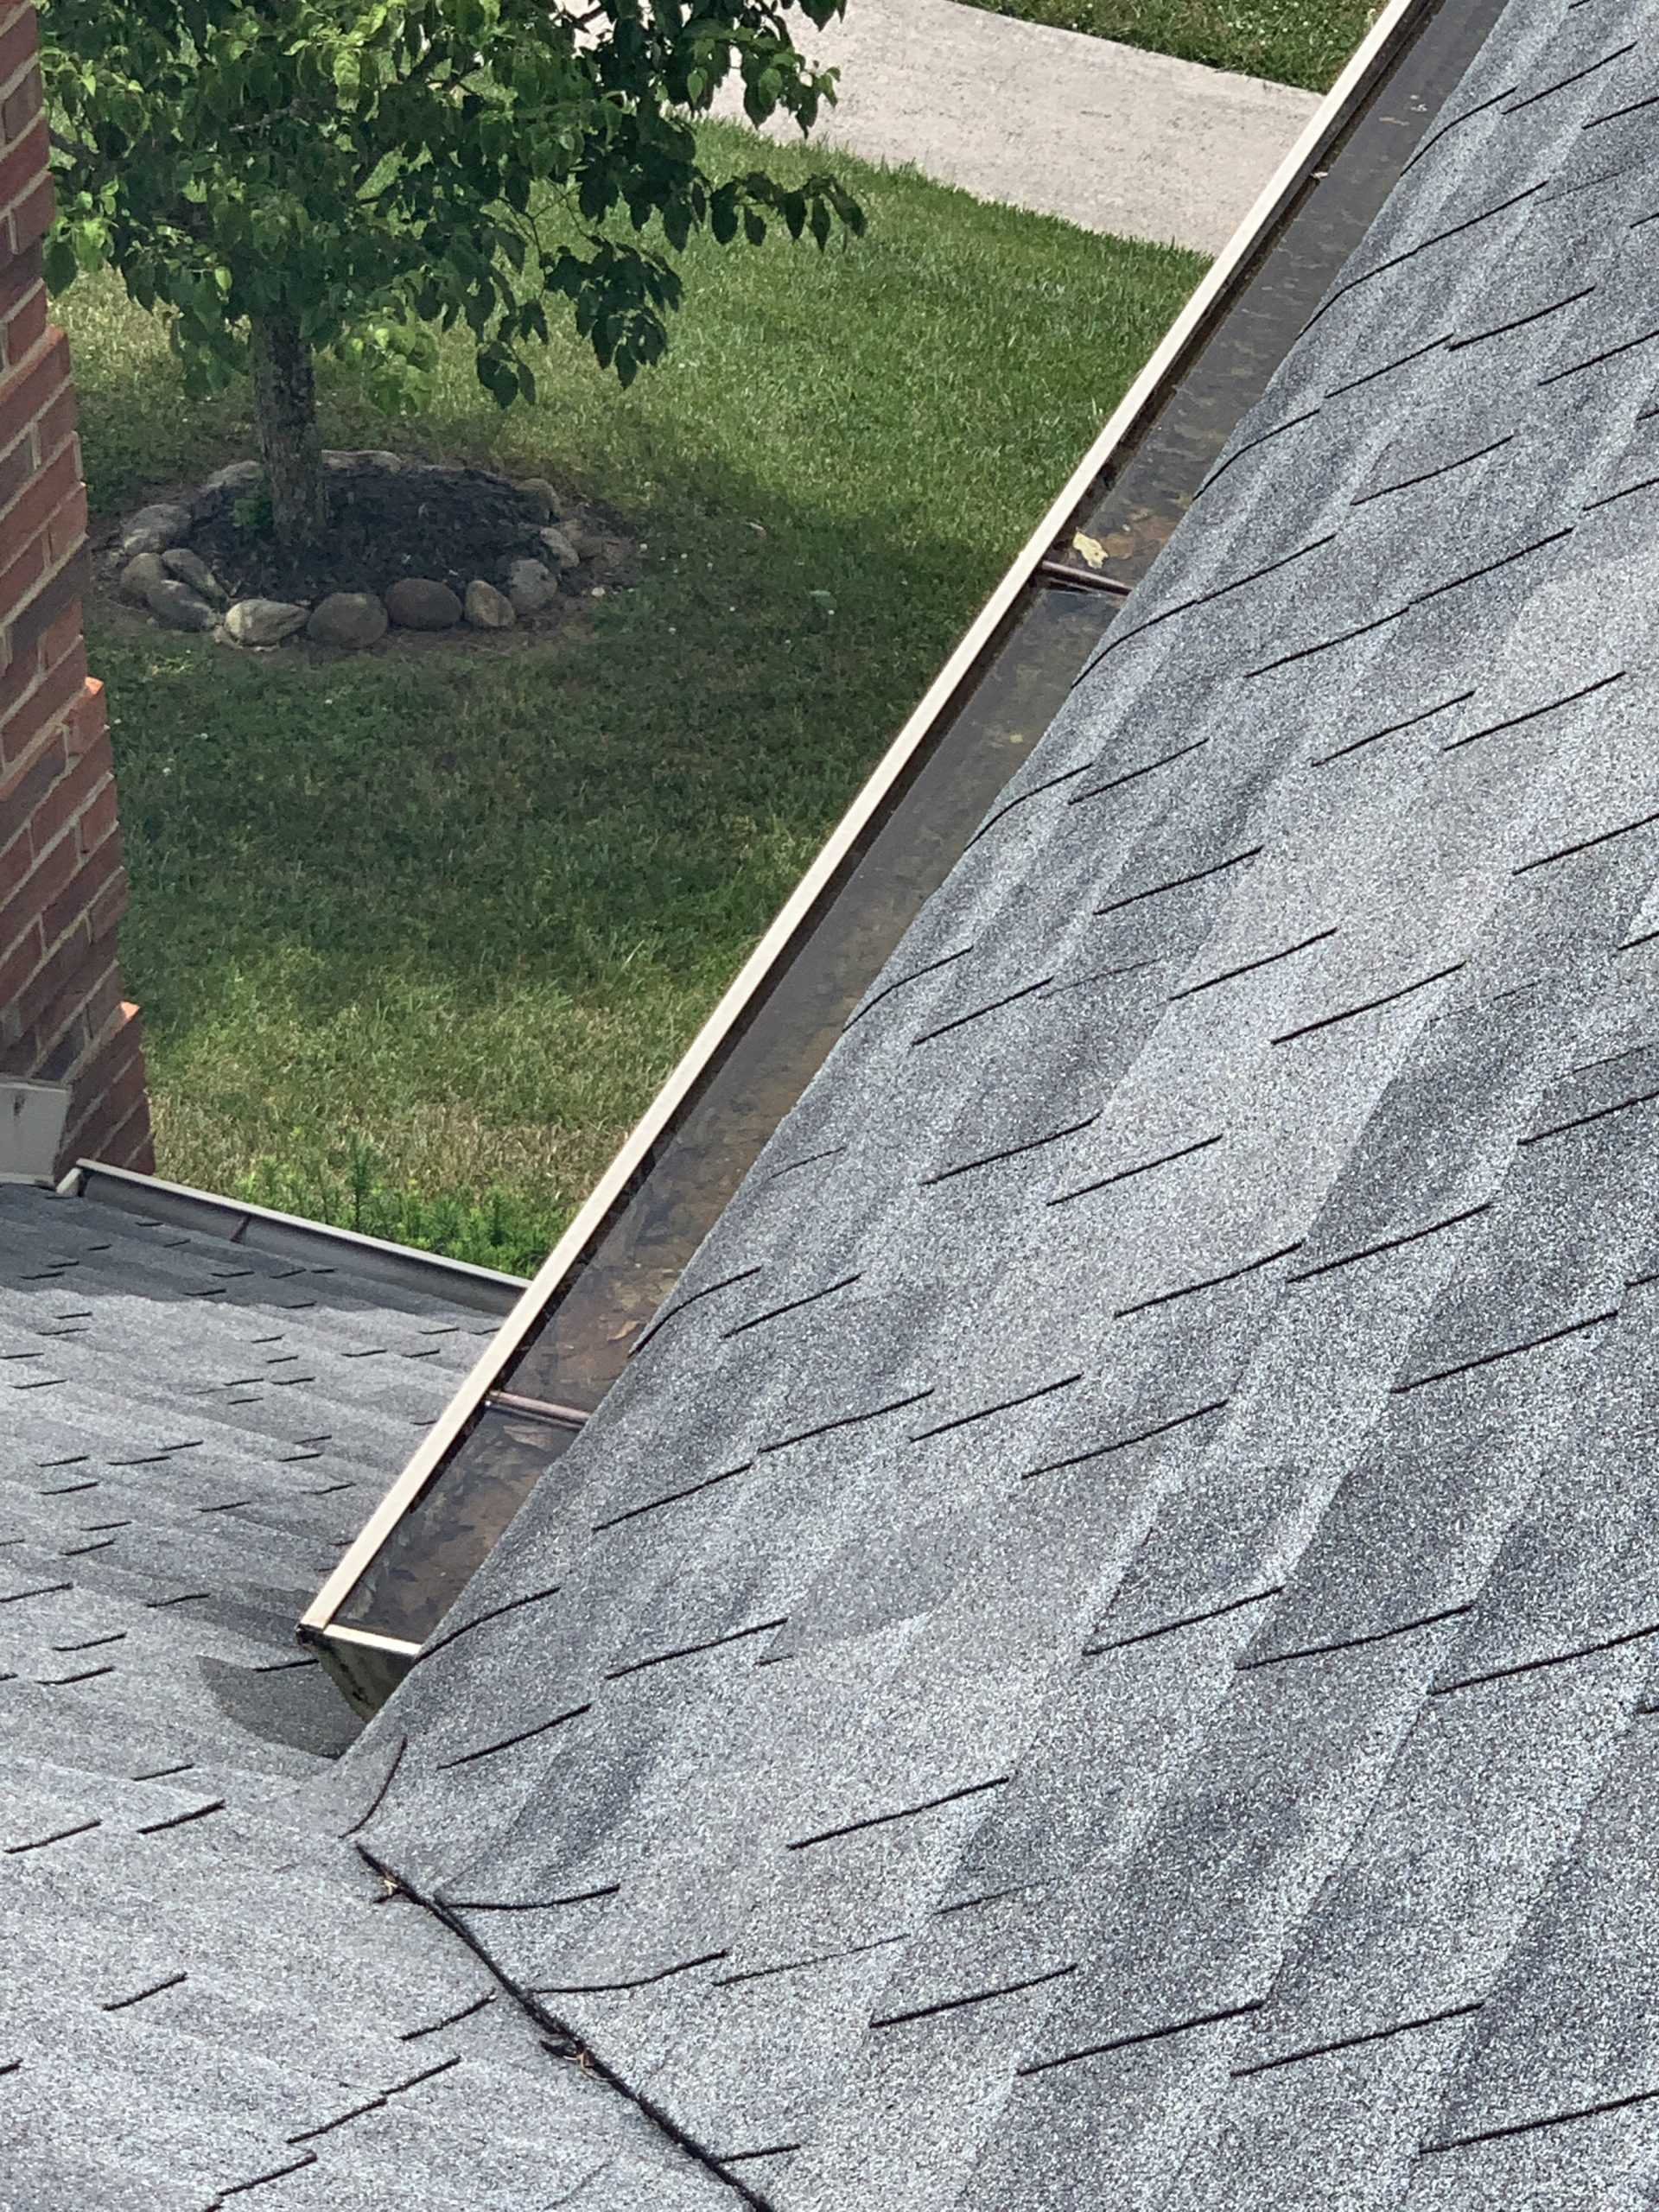 Improper pitch on gutters